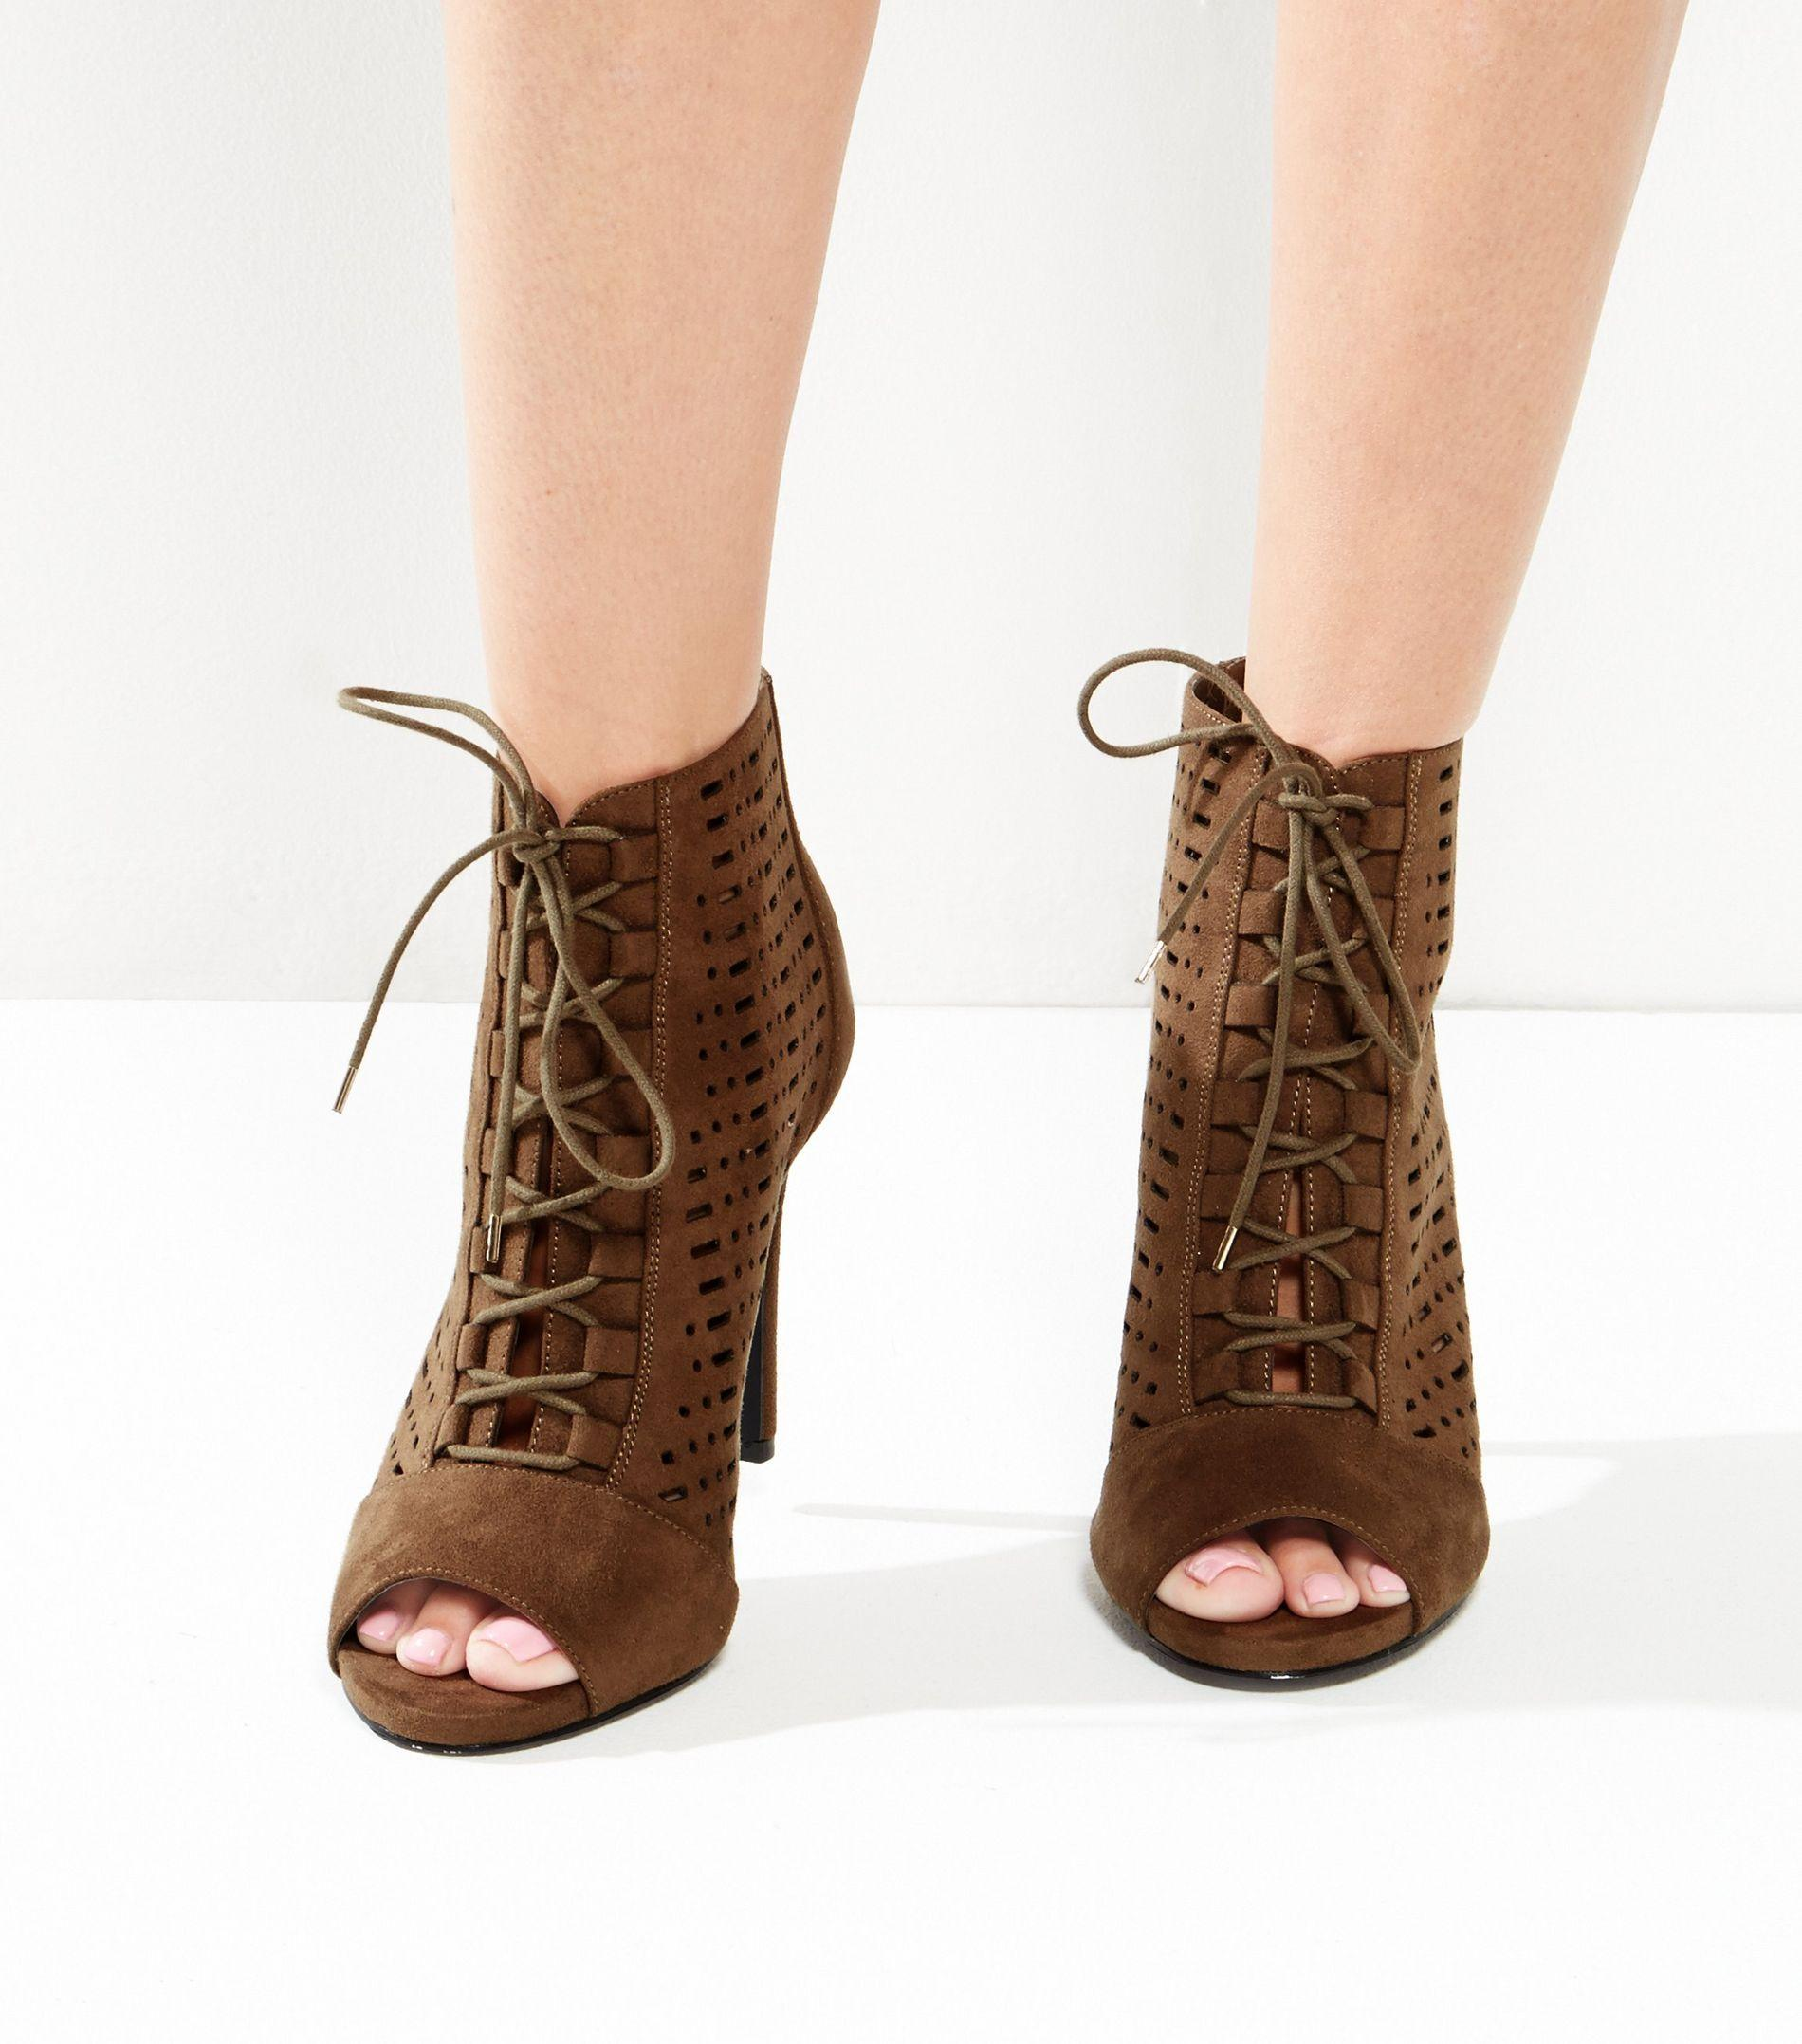 c0f9fd687f8a New Look Wide Fit Khaki Lace Up Sandals - Lyst